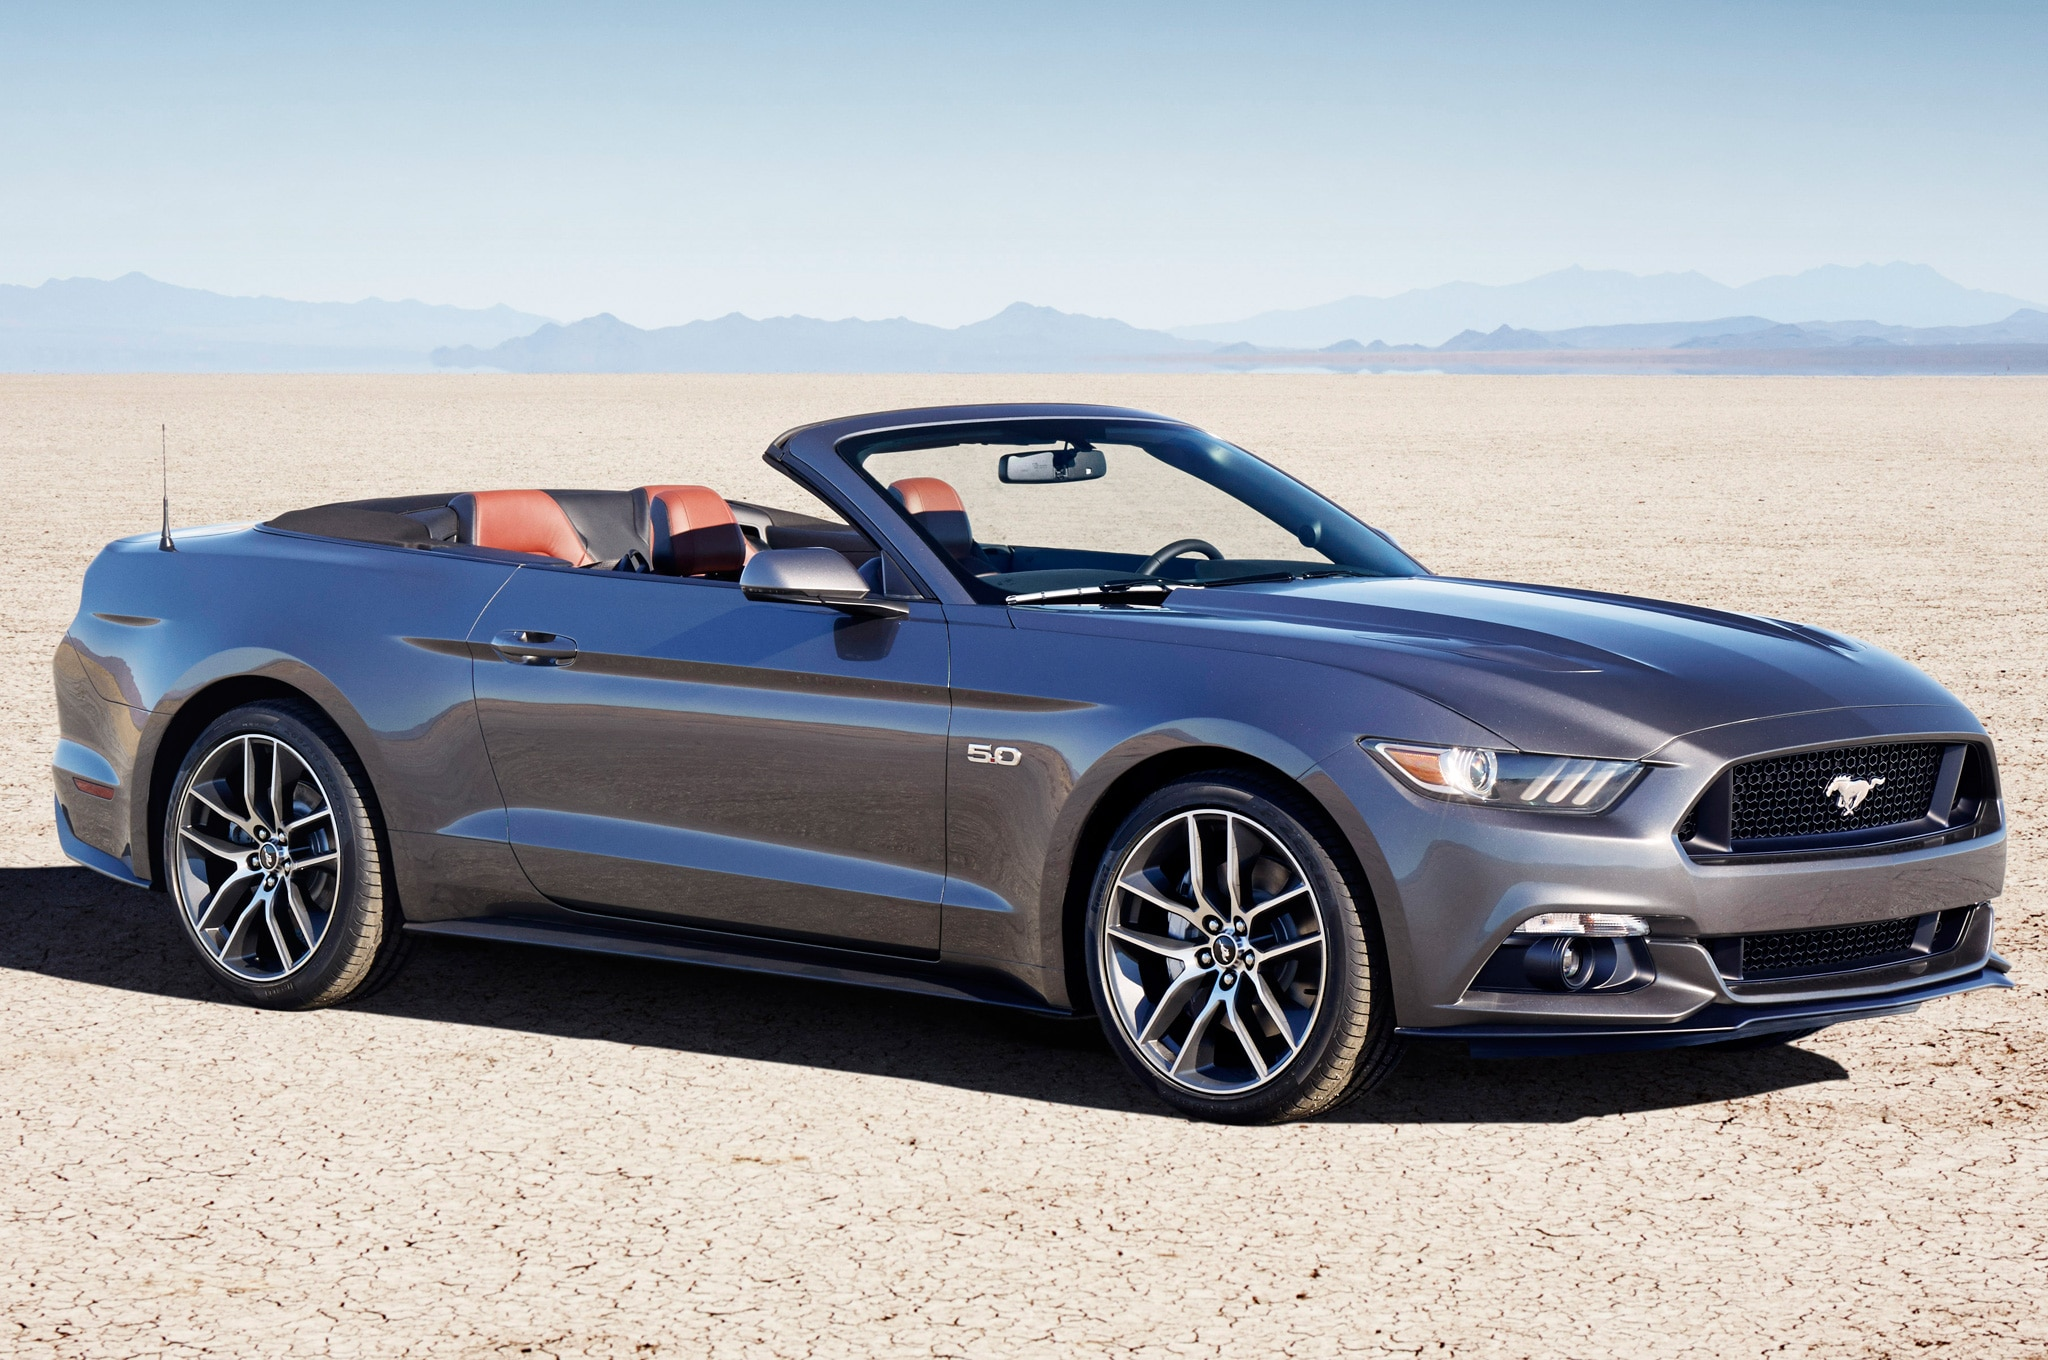 2015 ford mustang gt convertible front three quarter view